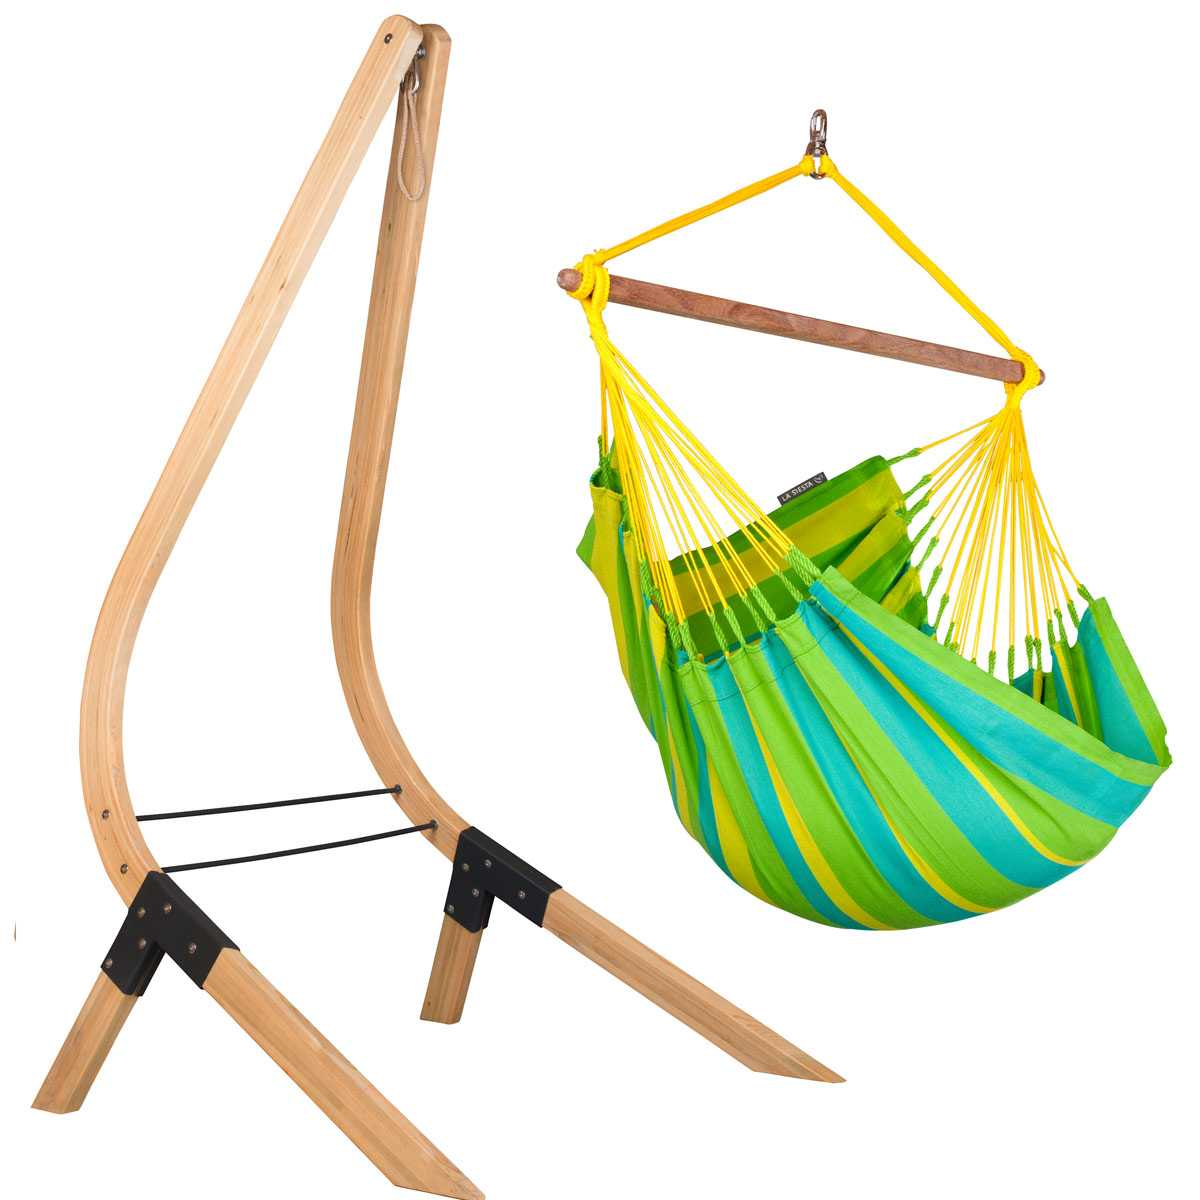 Kit chaise hamac Sonrisa et support en bois